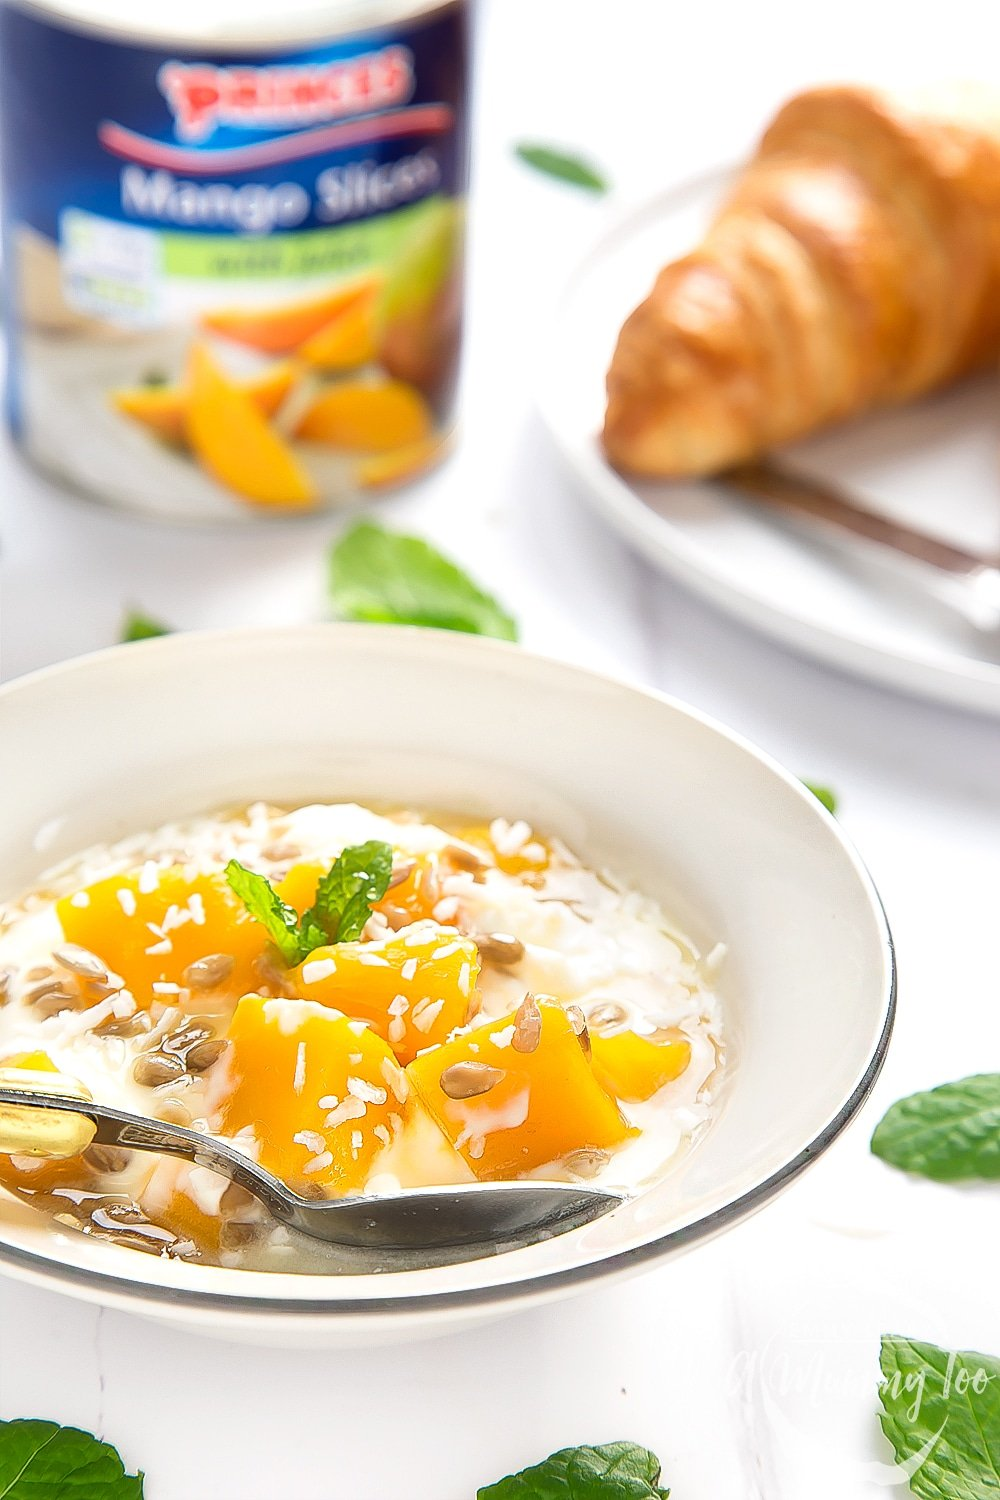 These yogurt and mango breakfast bowls are a quick and healthy breakfast, made with Princes mango slices with juice